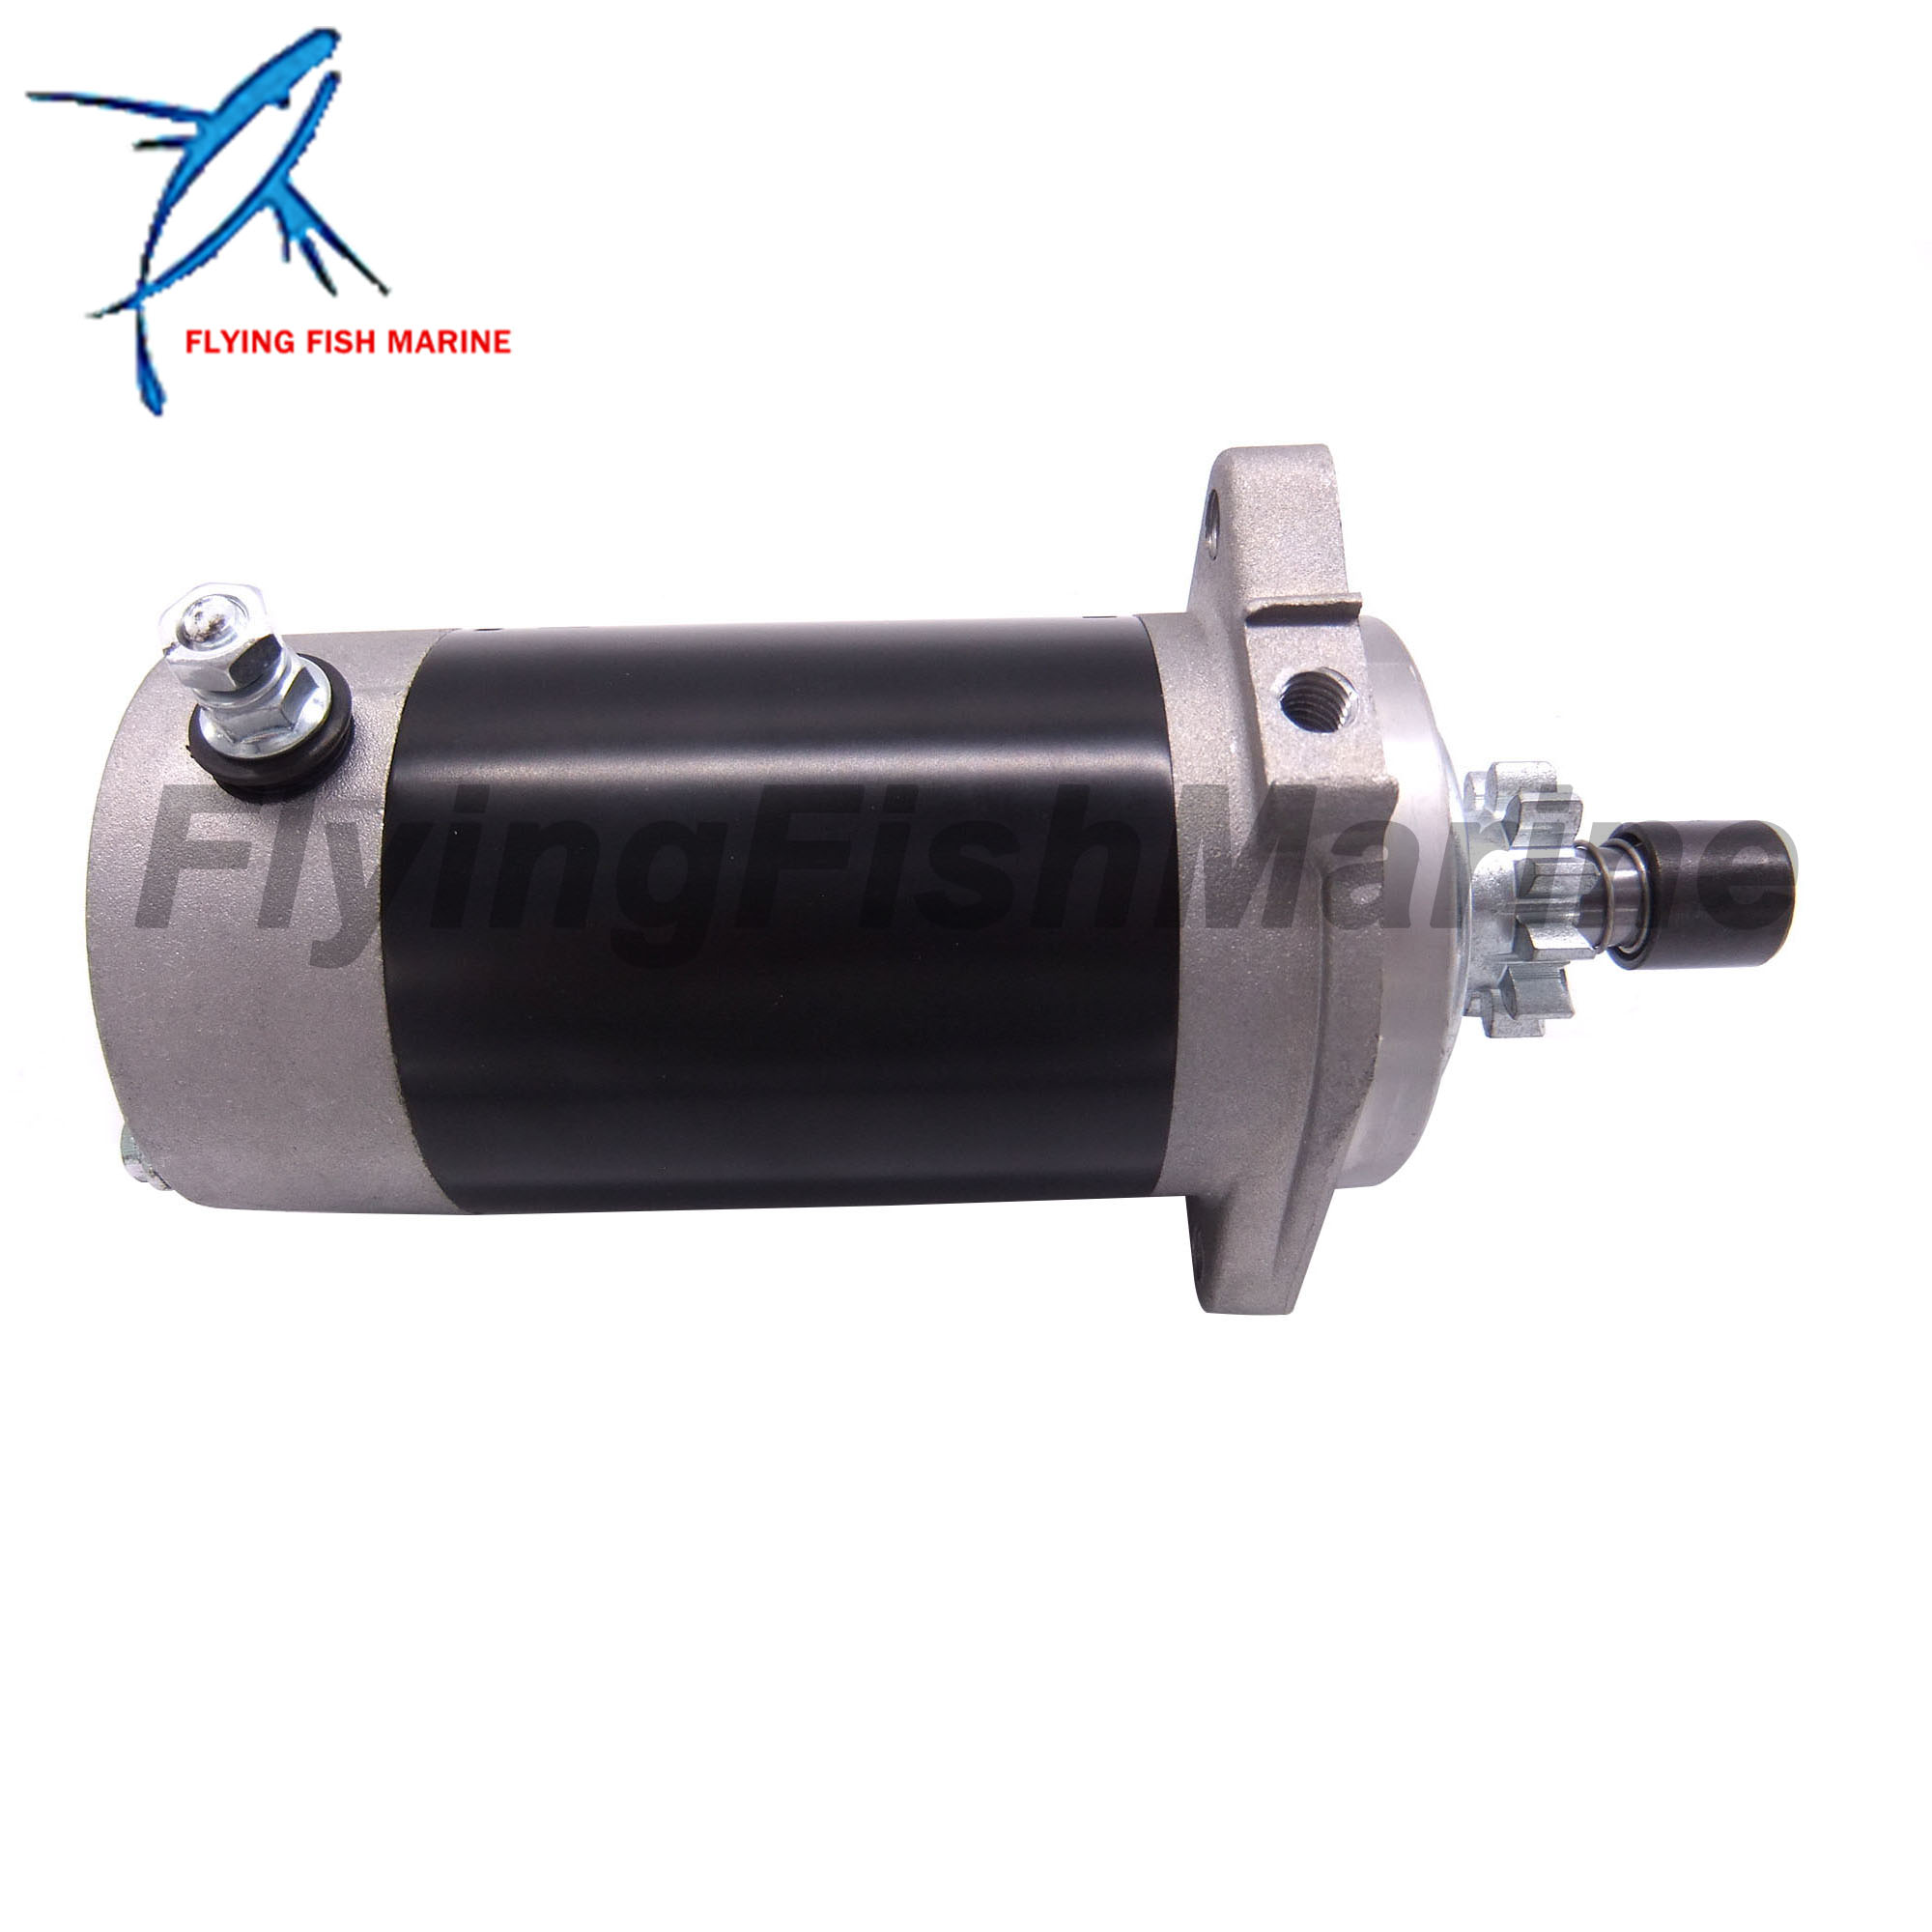 Outboard Engine 50-814980M 50-96359M 50-97693M Starter Motor For Mercury Marine 25HP 30HP 40HP Boat Motor